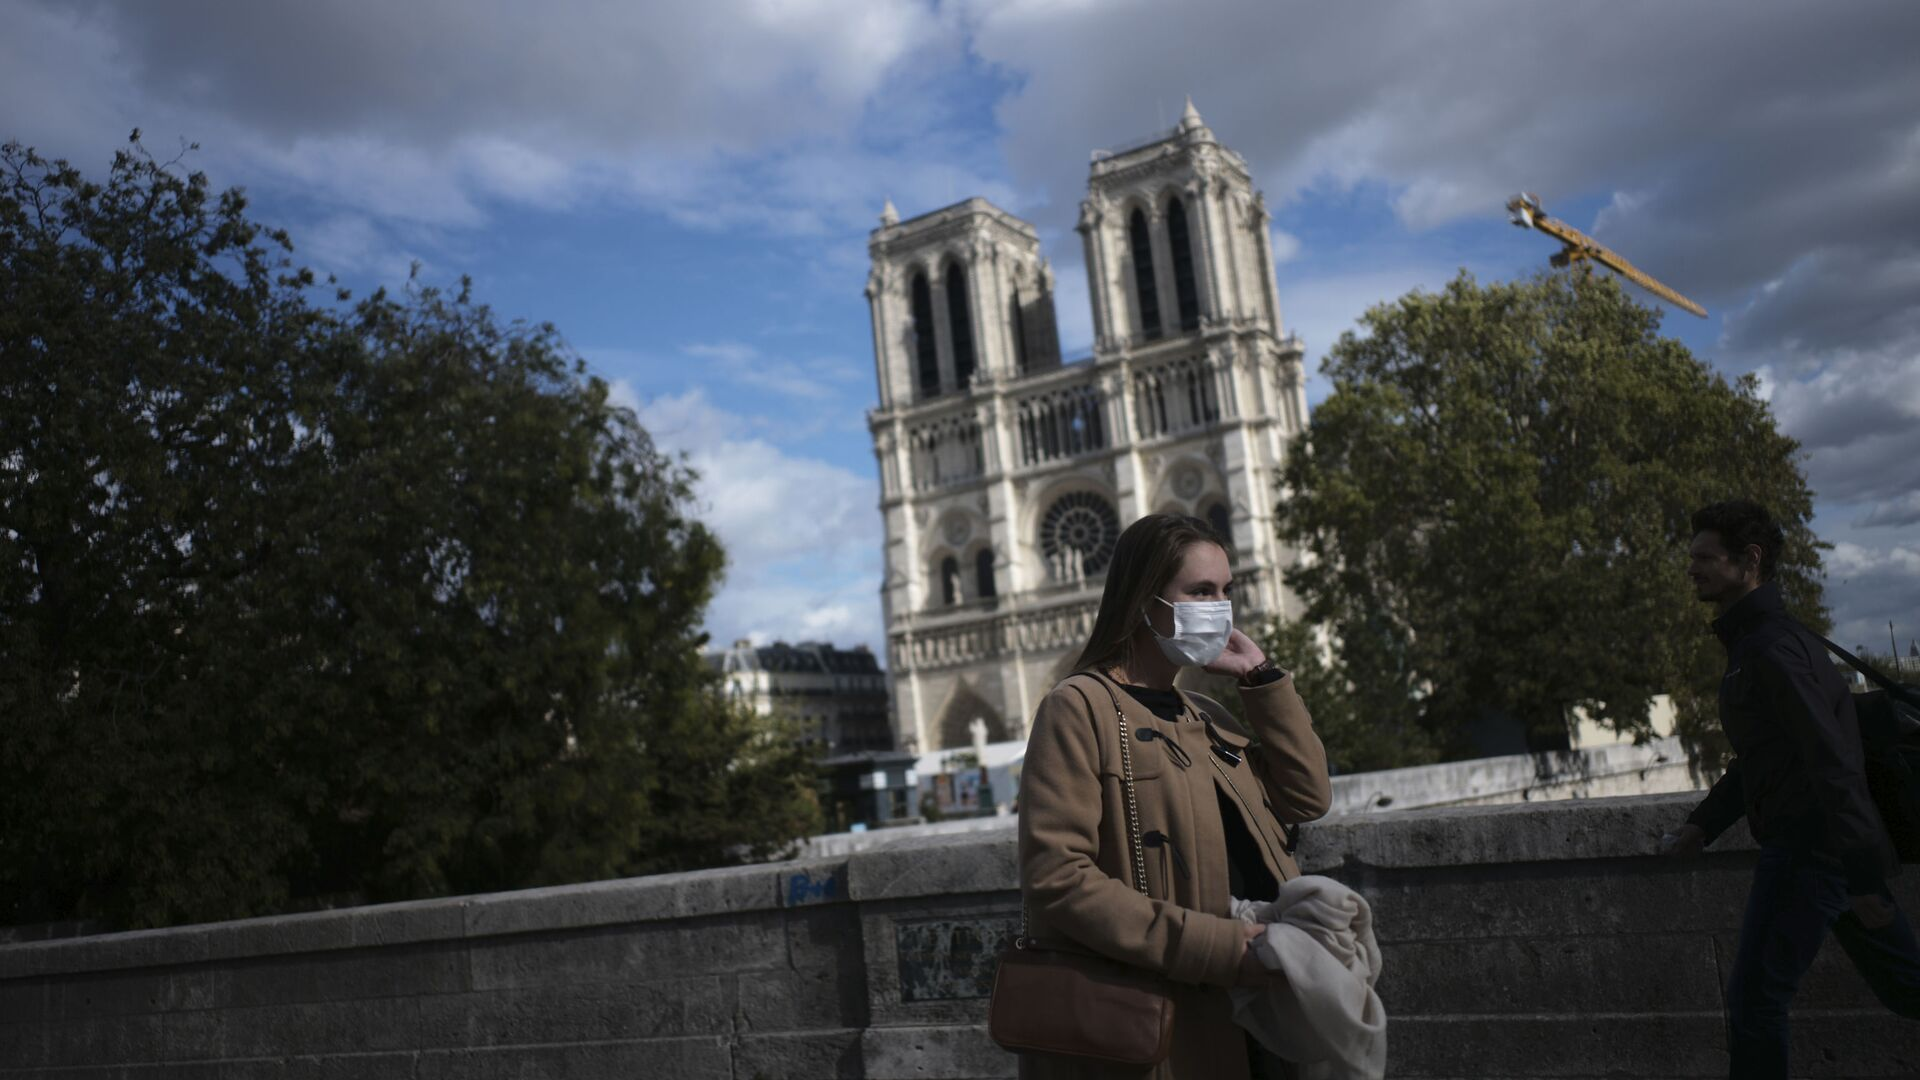 A woman walks by Notre Dame cathedral Saturday Sept.26, 2020 in Paris. While France suffered testing shortages early in the pandemic, ramped-up testing since this summer has helped authorities track a rising tide of infections across the country. - Sputnik International, 1920, 18.09.2021